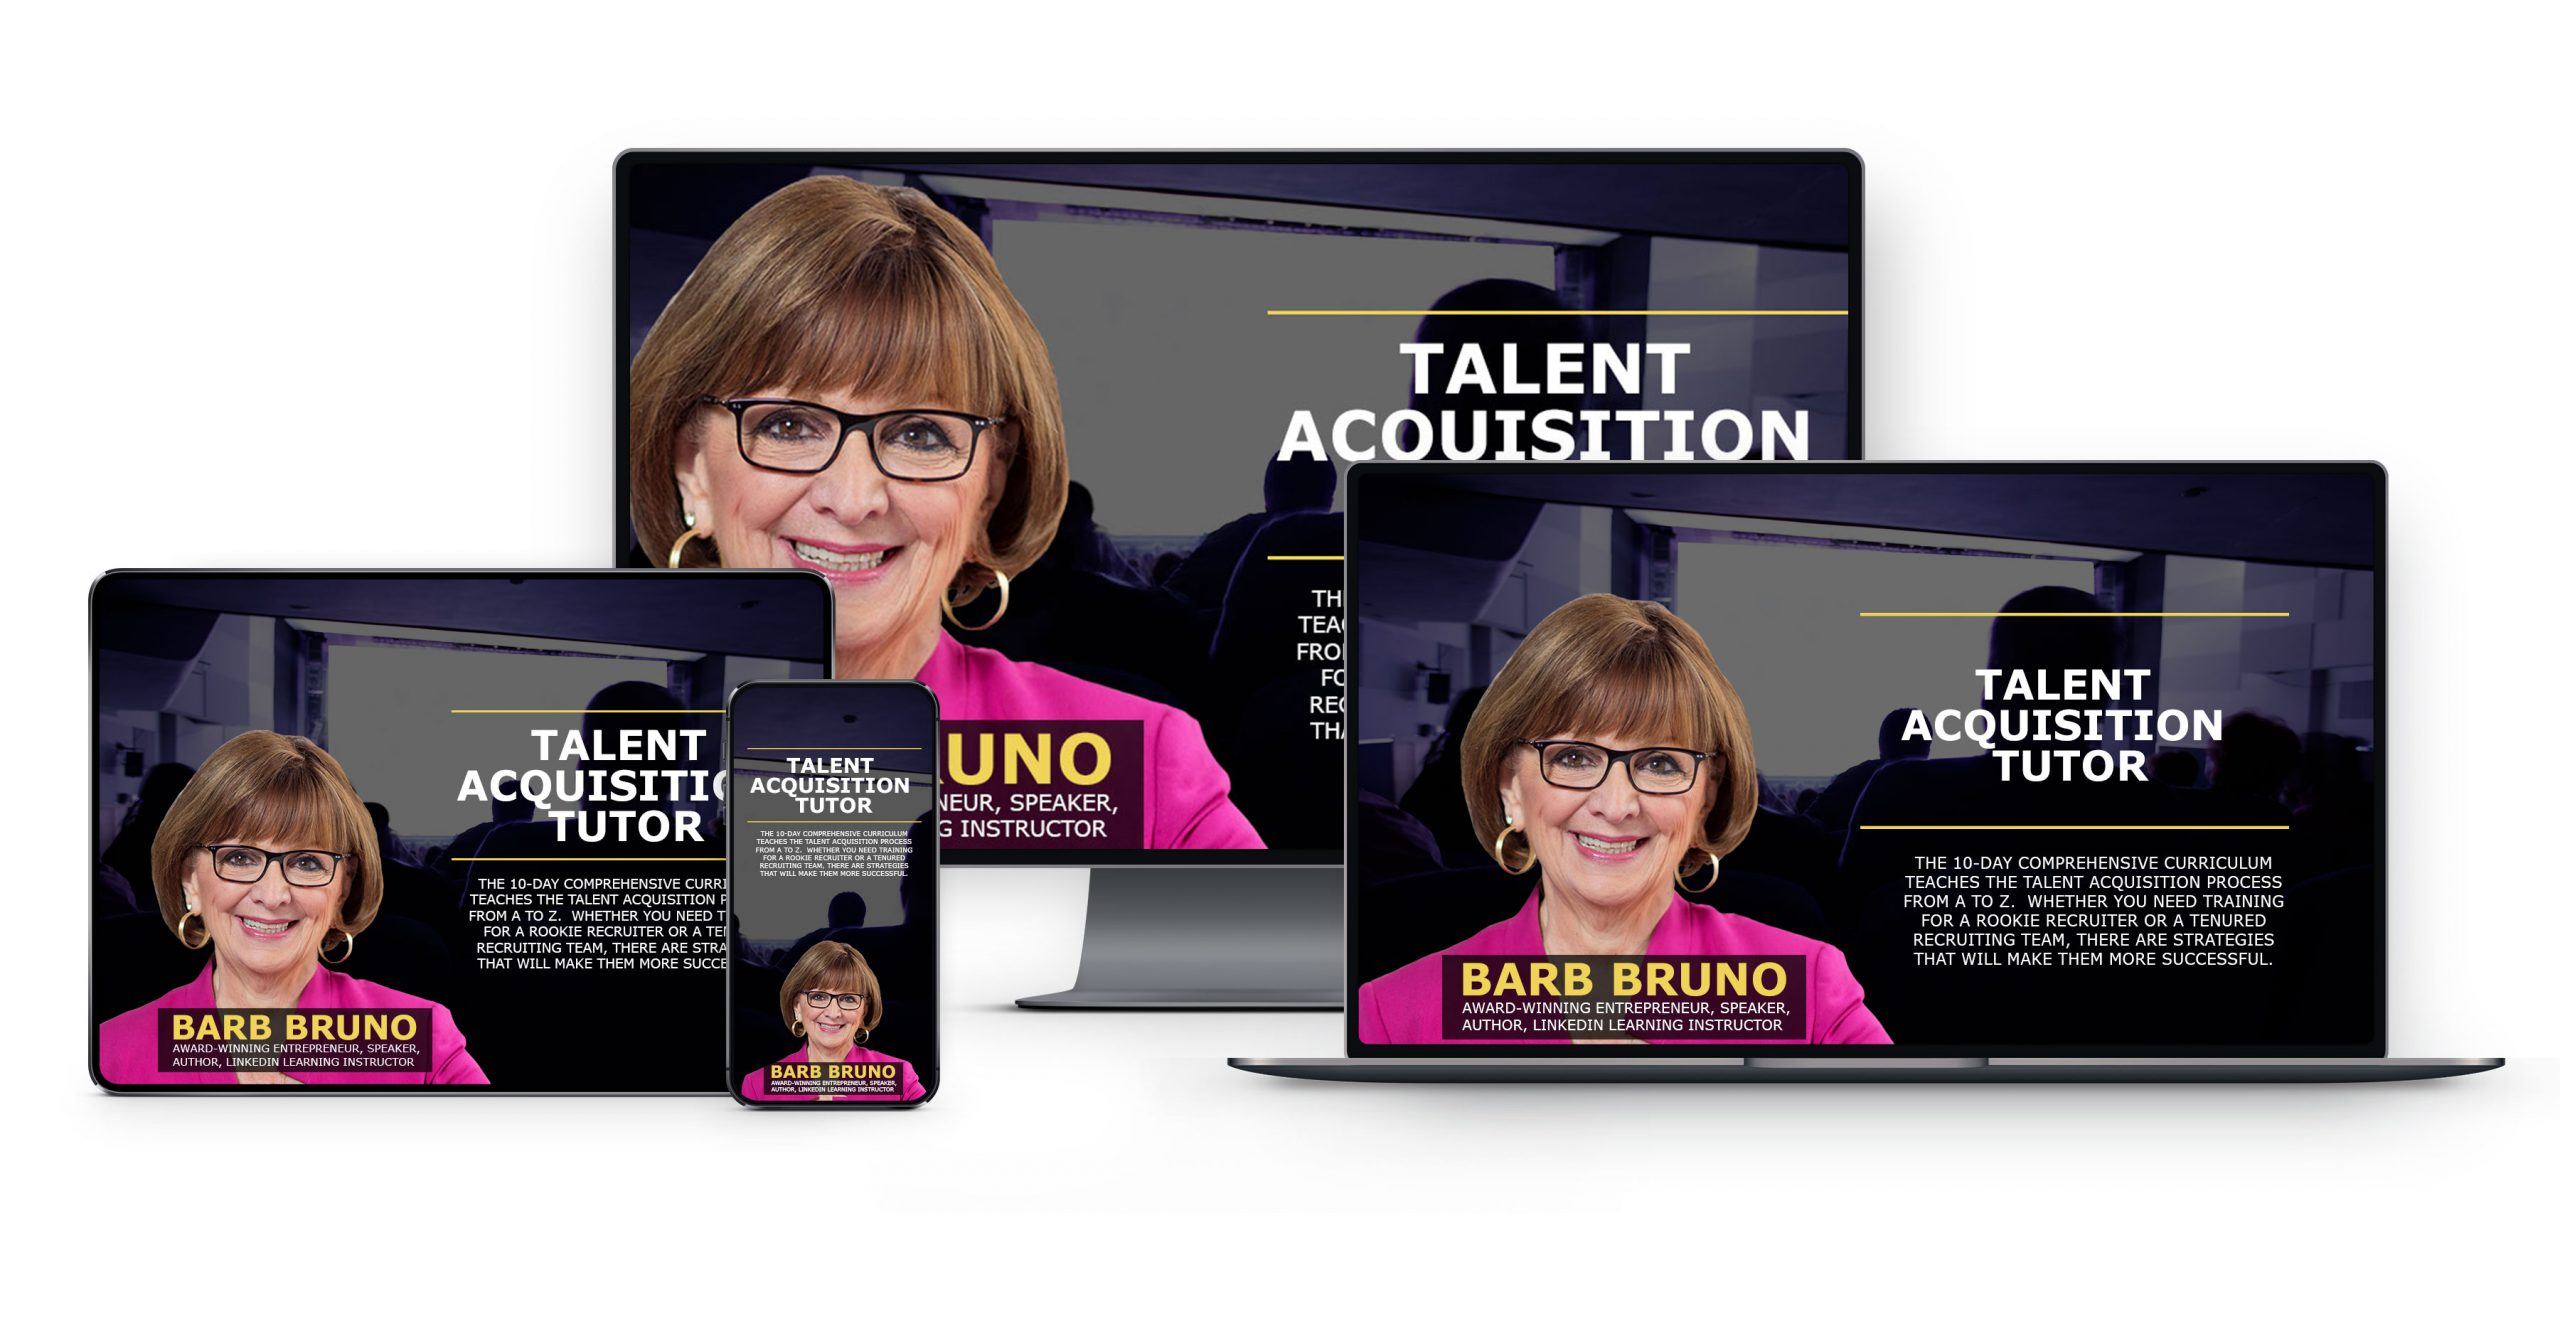 TALENT--ACQUISITION--TUTOR